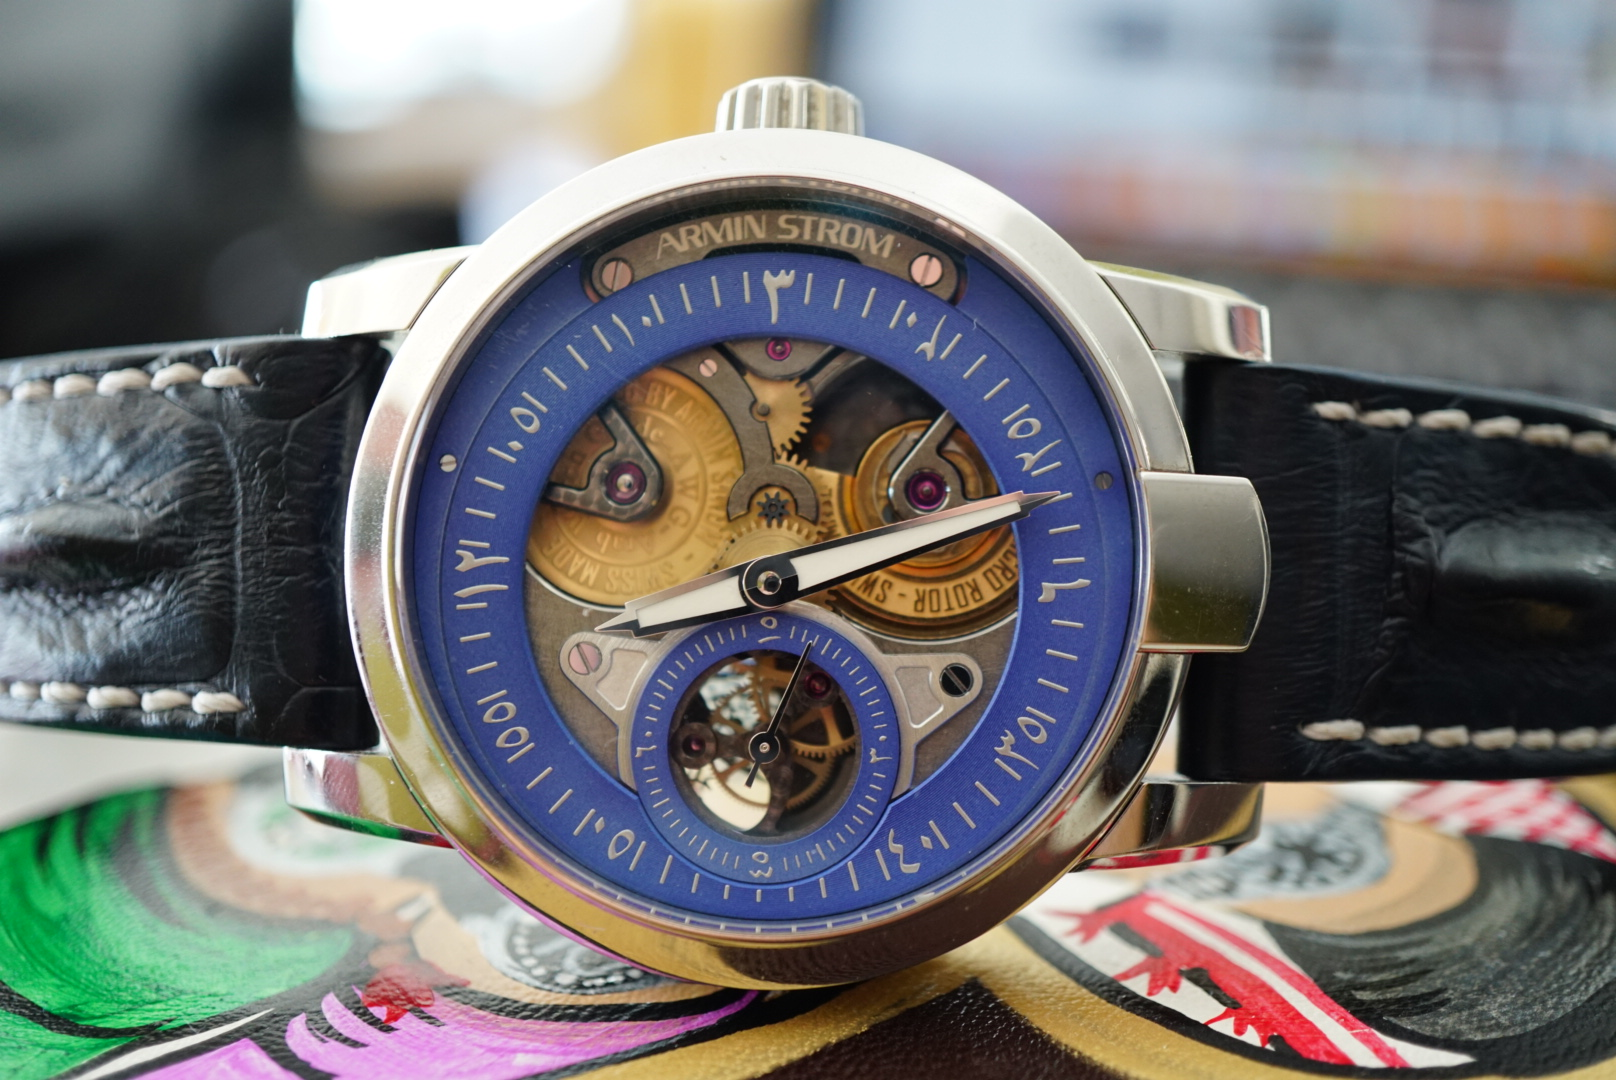 INTRODUCING THE ARMINSTROM GRAVITY ARAB WATCH CLUB EDITION 1